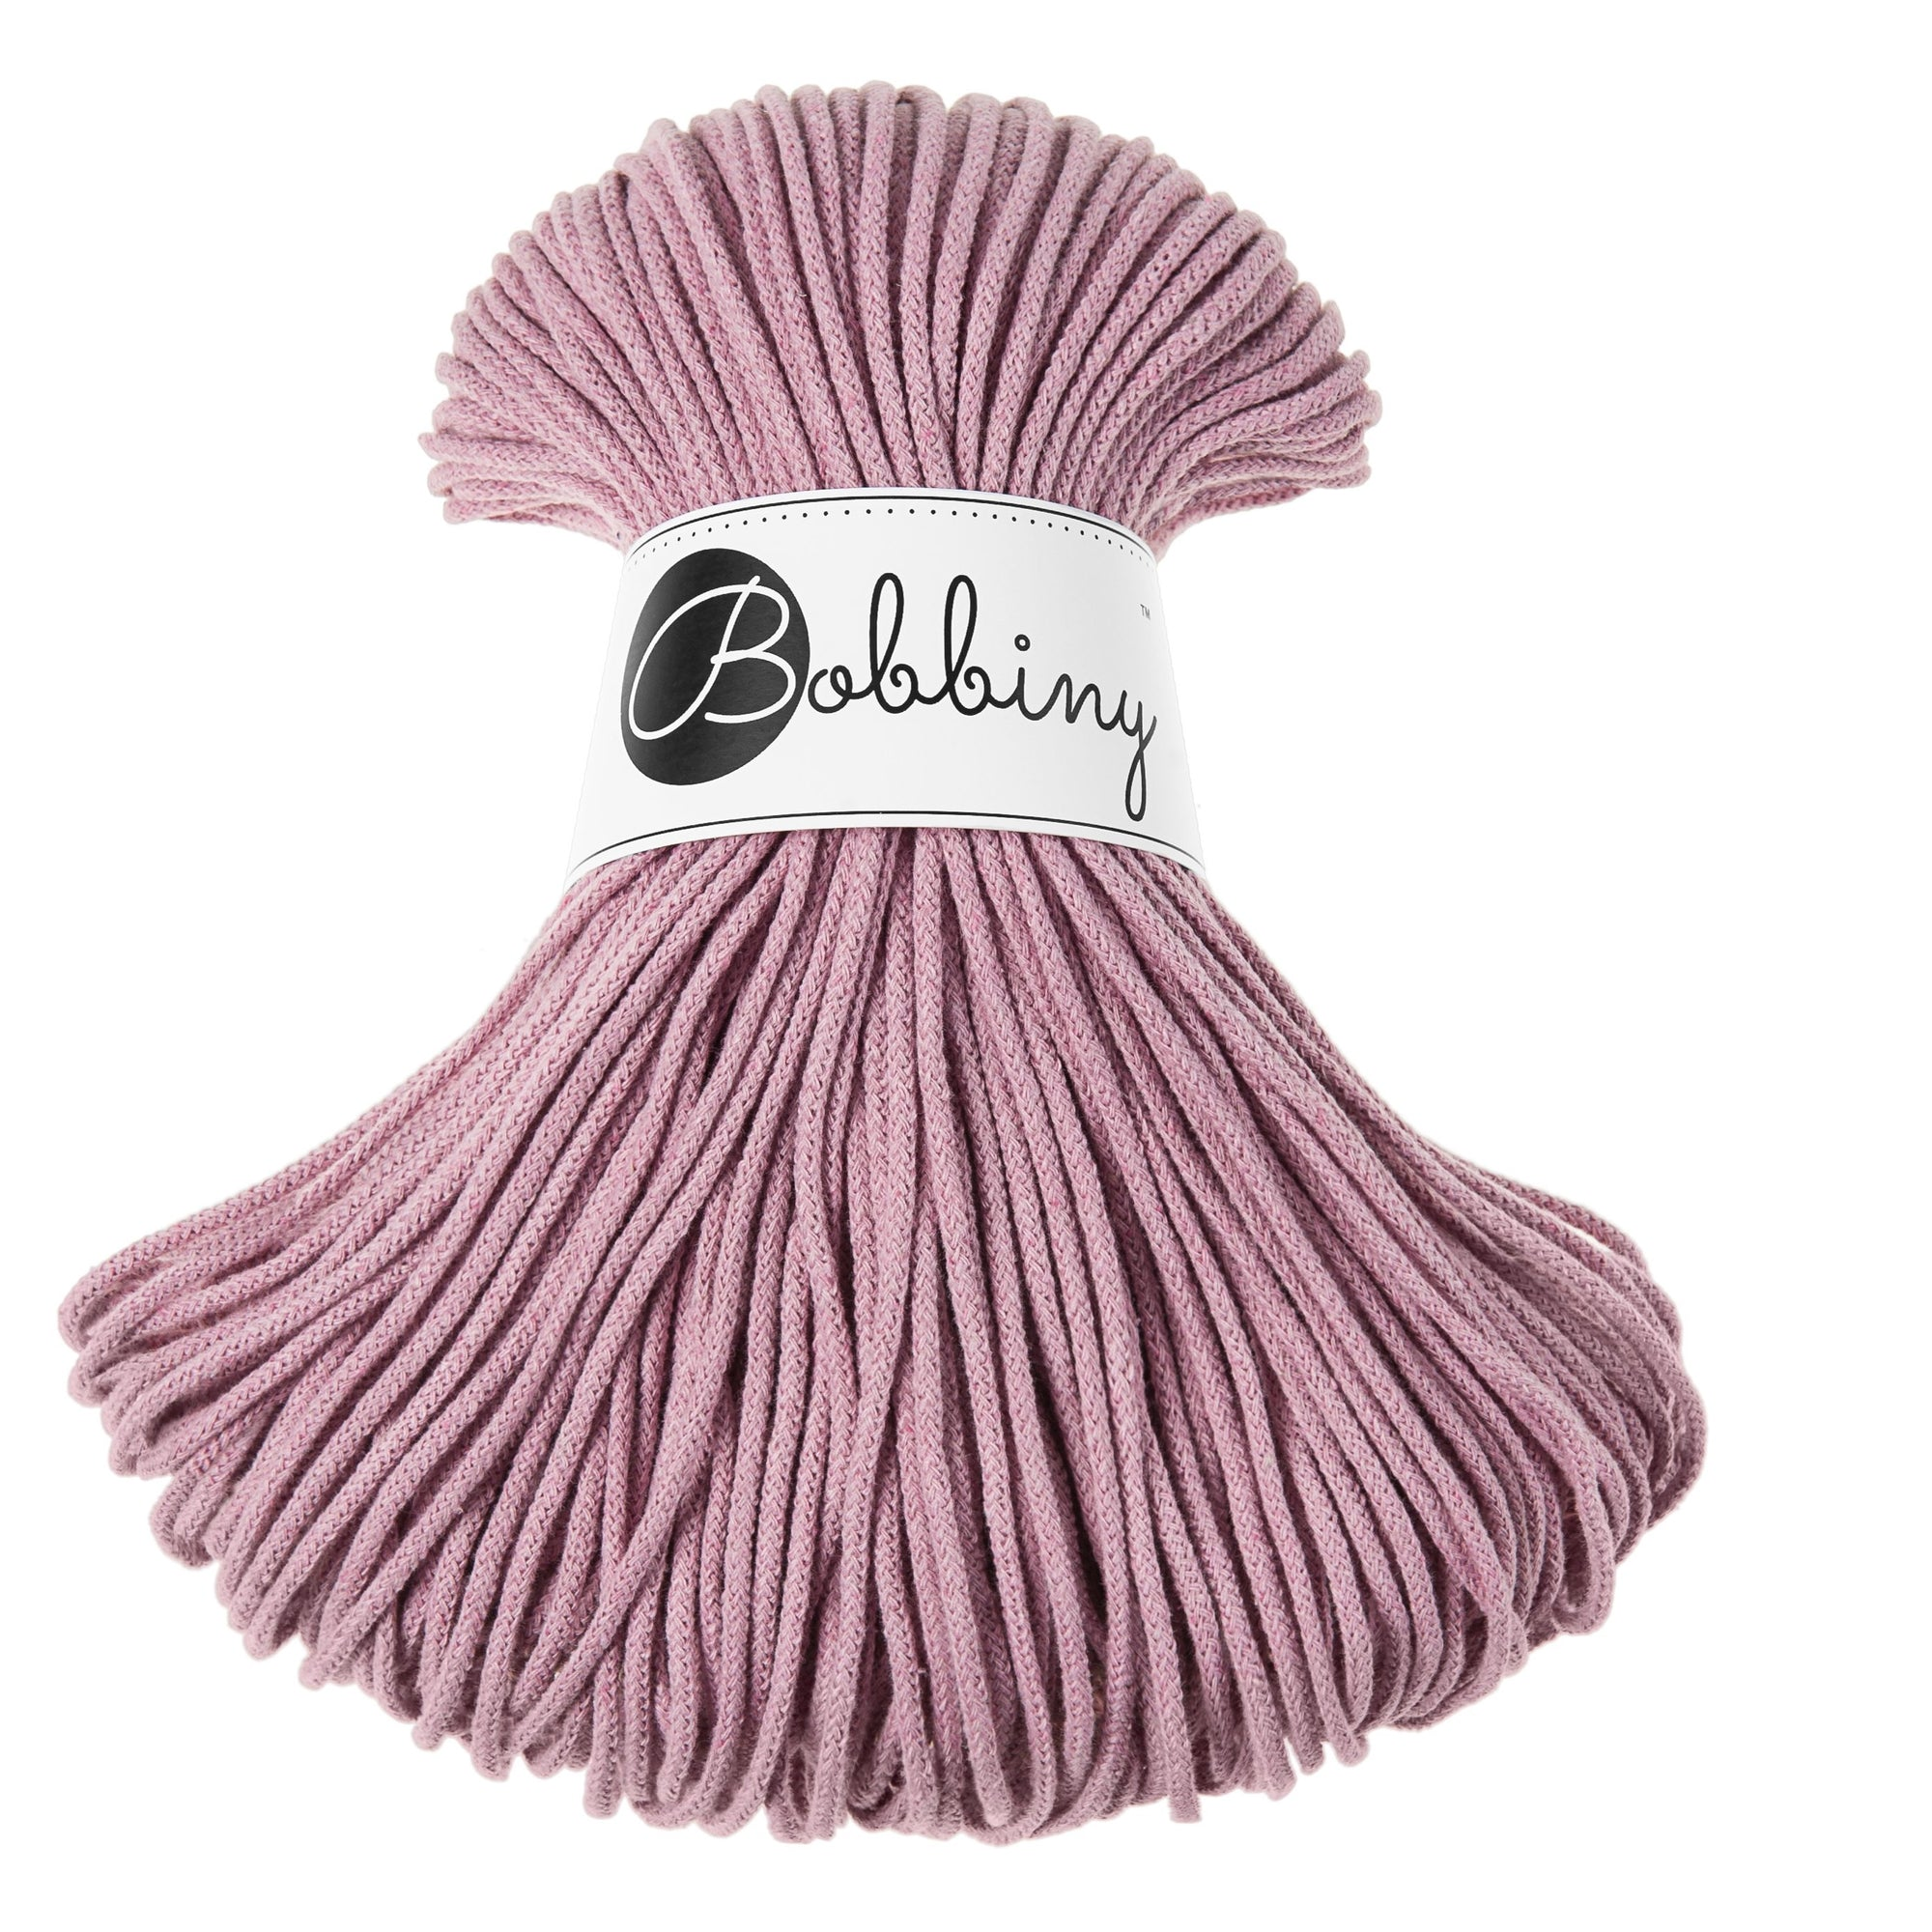 These beautiful Bobbiny cords are made in Poland from 100% recycled cottons and are non-toxic, certified safe for children and meet certified worldwide textile standards.  3mm Diameter  100 metres Length  Recommended for use with 8-10mm crochet or knitting needles.  Cotton inner and outer layers, perfect for use with Macrame, Crochet or Knitting.